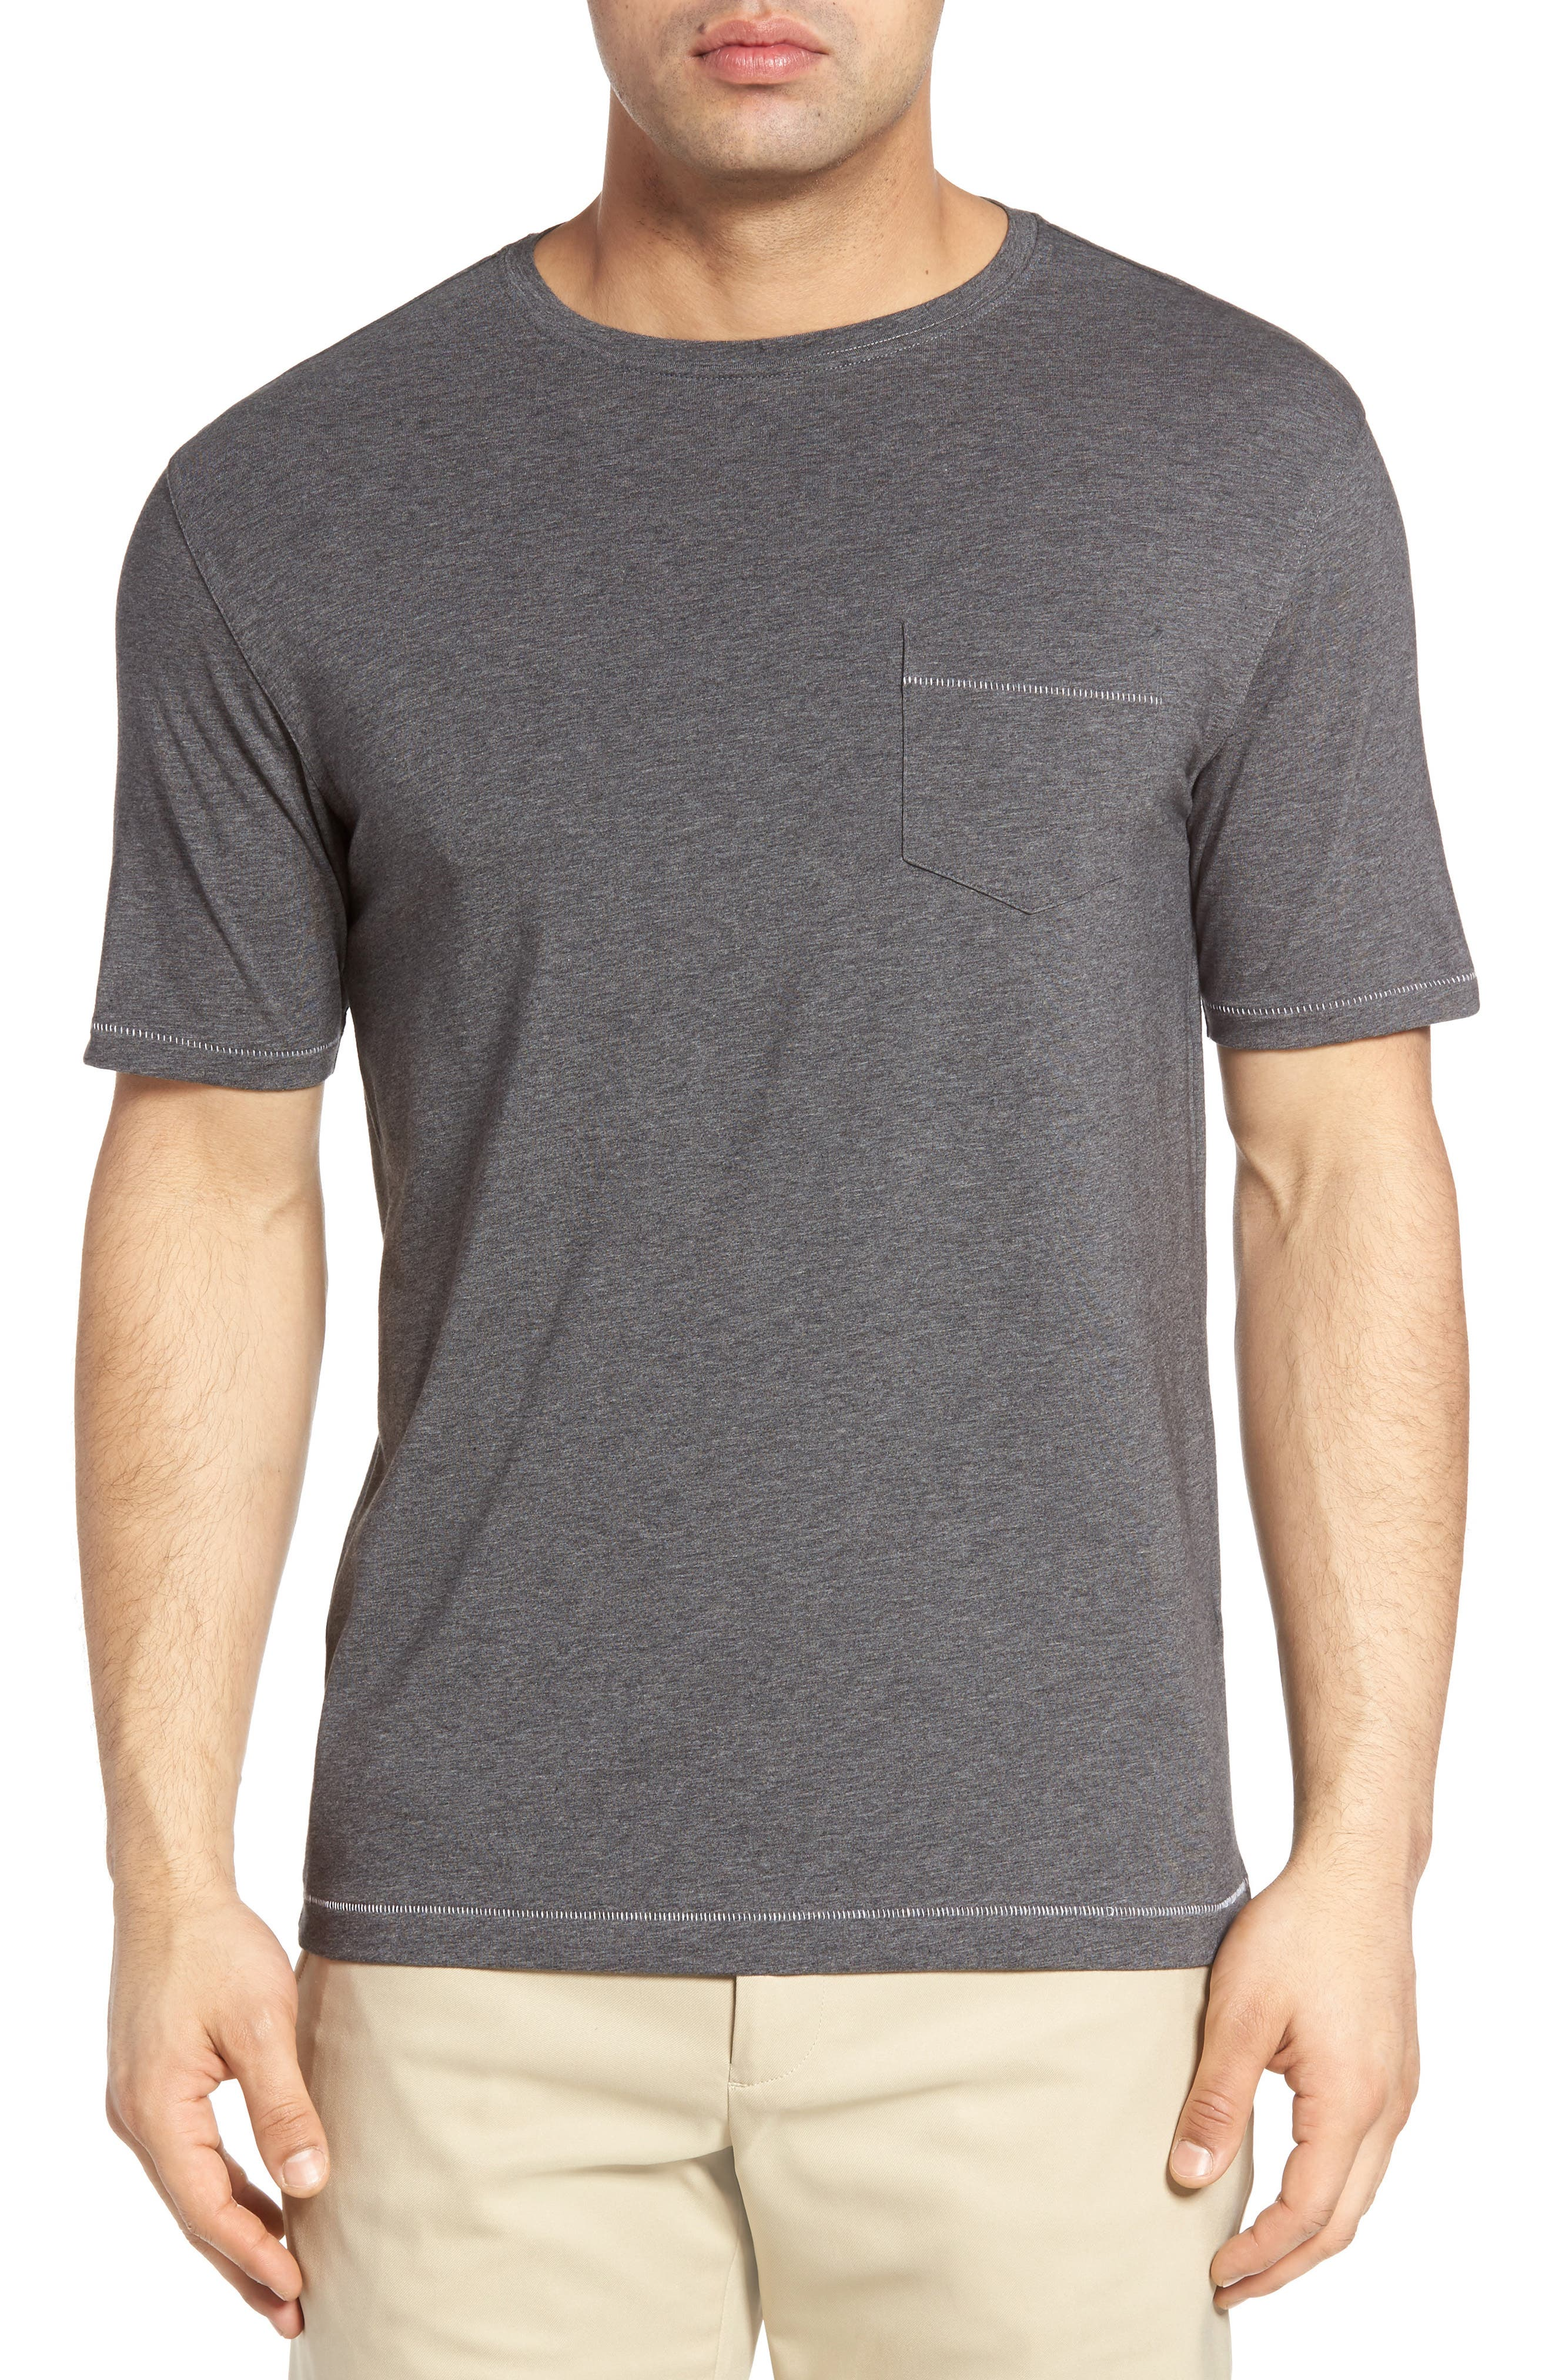 R18 Pocket T-Shirt,                             Main thumbnail 1, color,                             Charcoal Heather